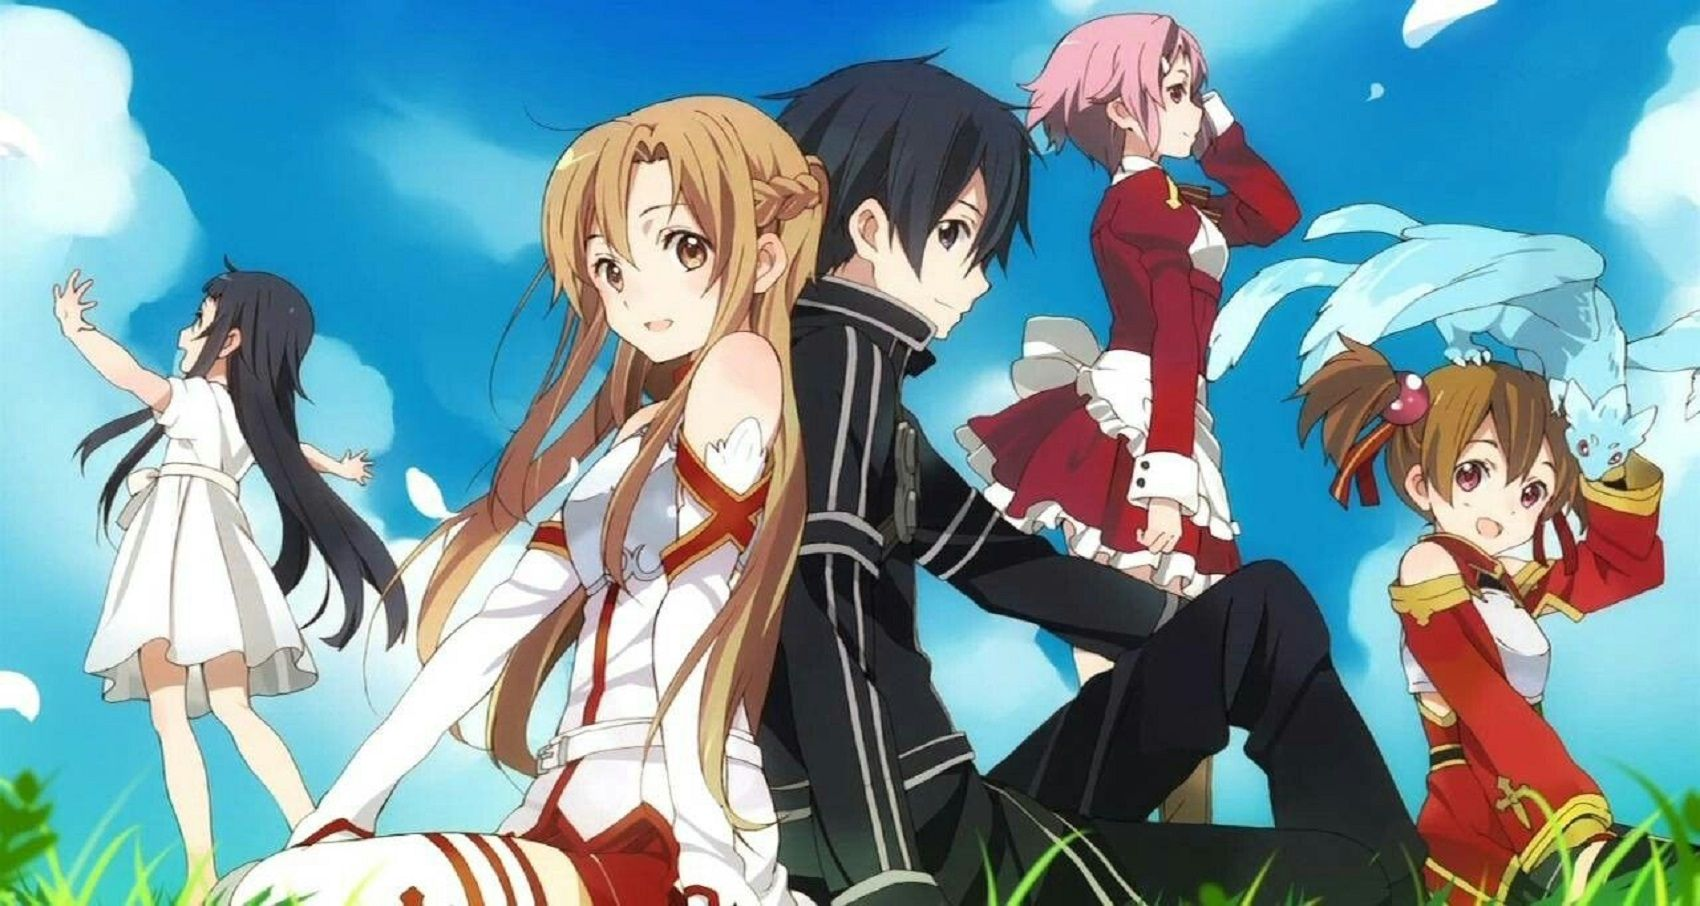 Sword Art Online: The 10 Best Episodes Of The Aincrad Arc (According To IMDb), Ranked